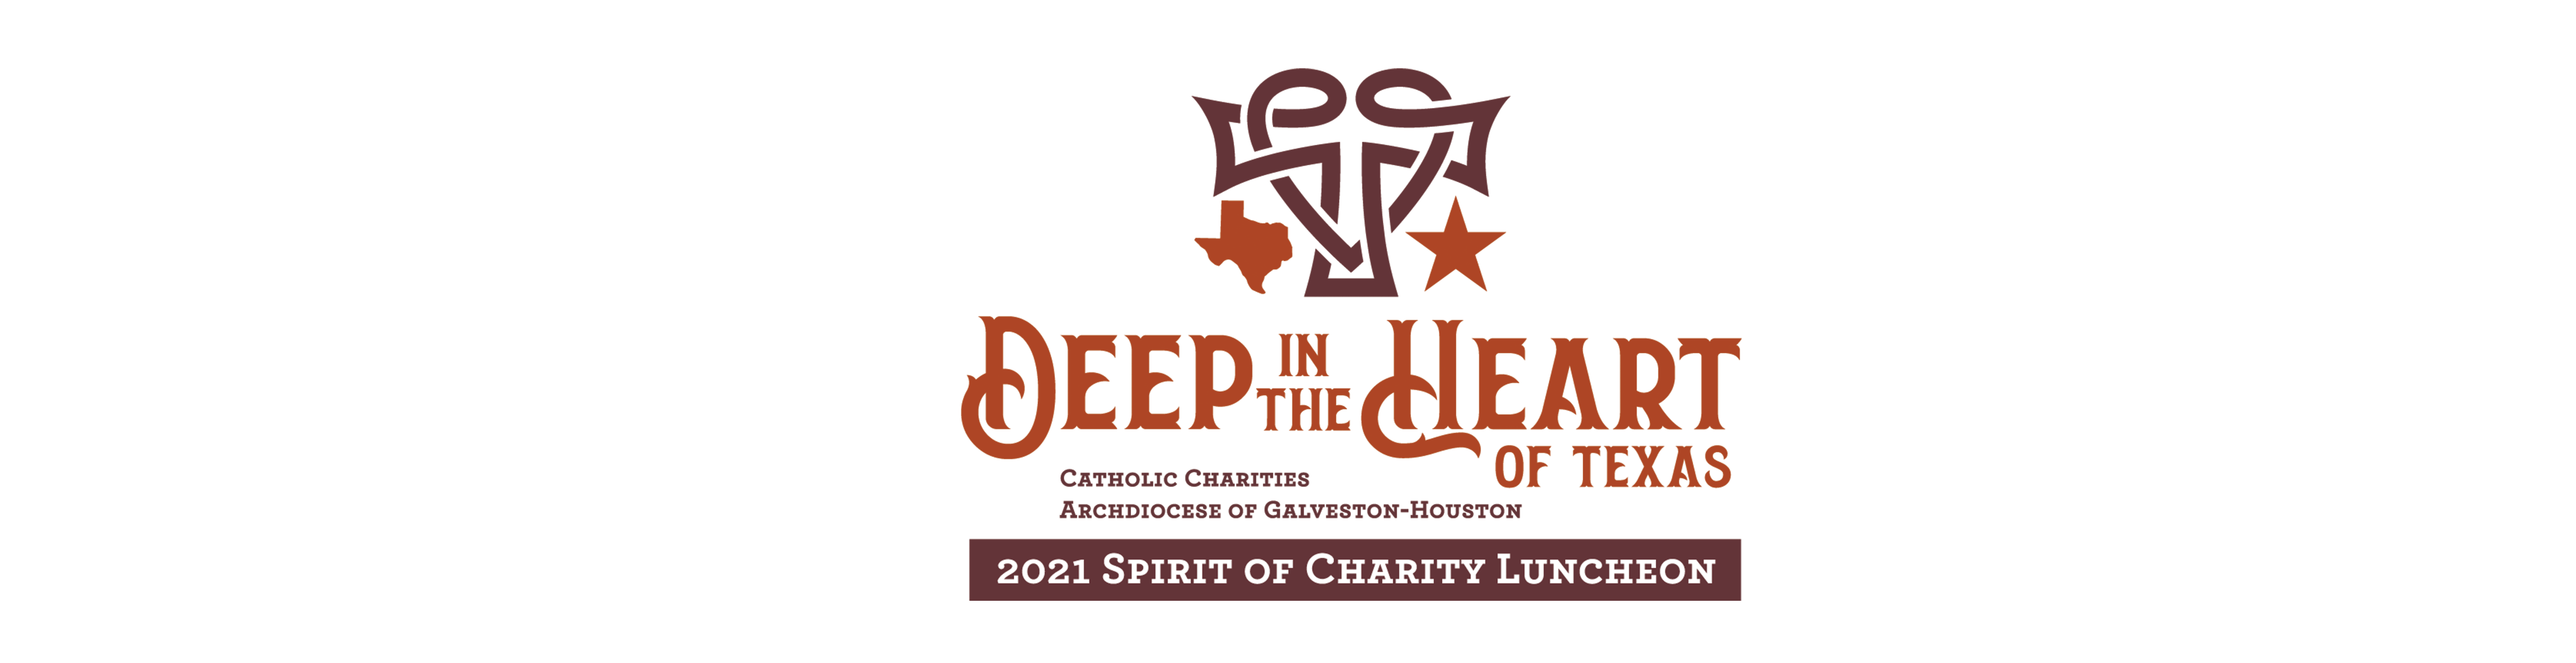 2021 Spirit of Charity Luncheon Celebration